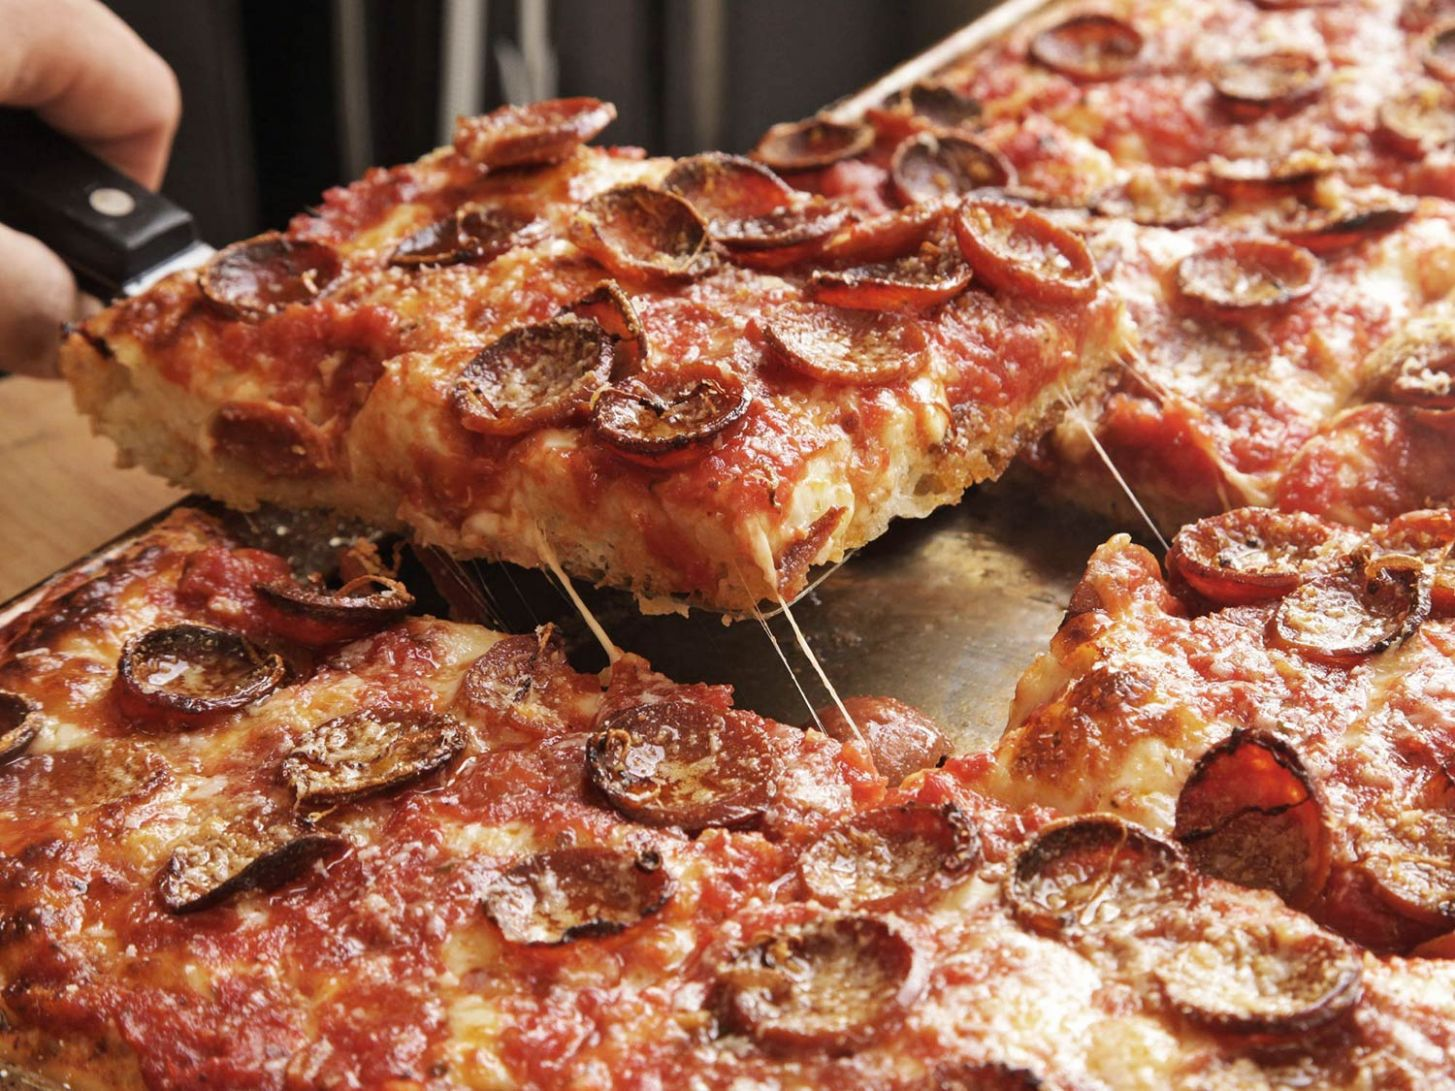 Sicilian Pizza With Pepperoni and Spicy Tomato Sauce Recipe - Pizza Recipes Serious Eats